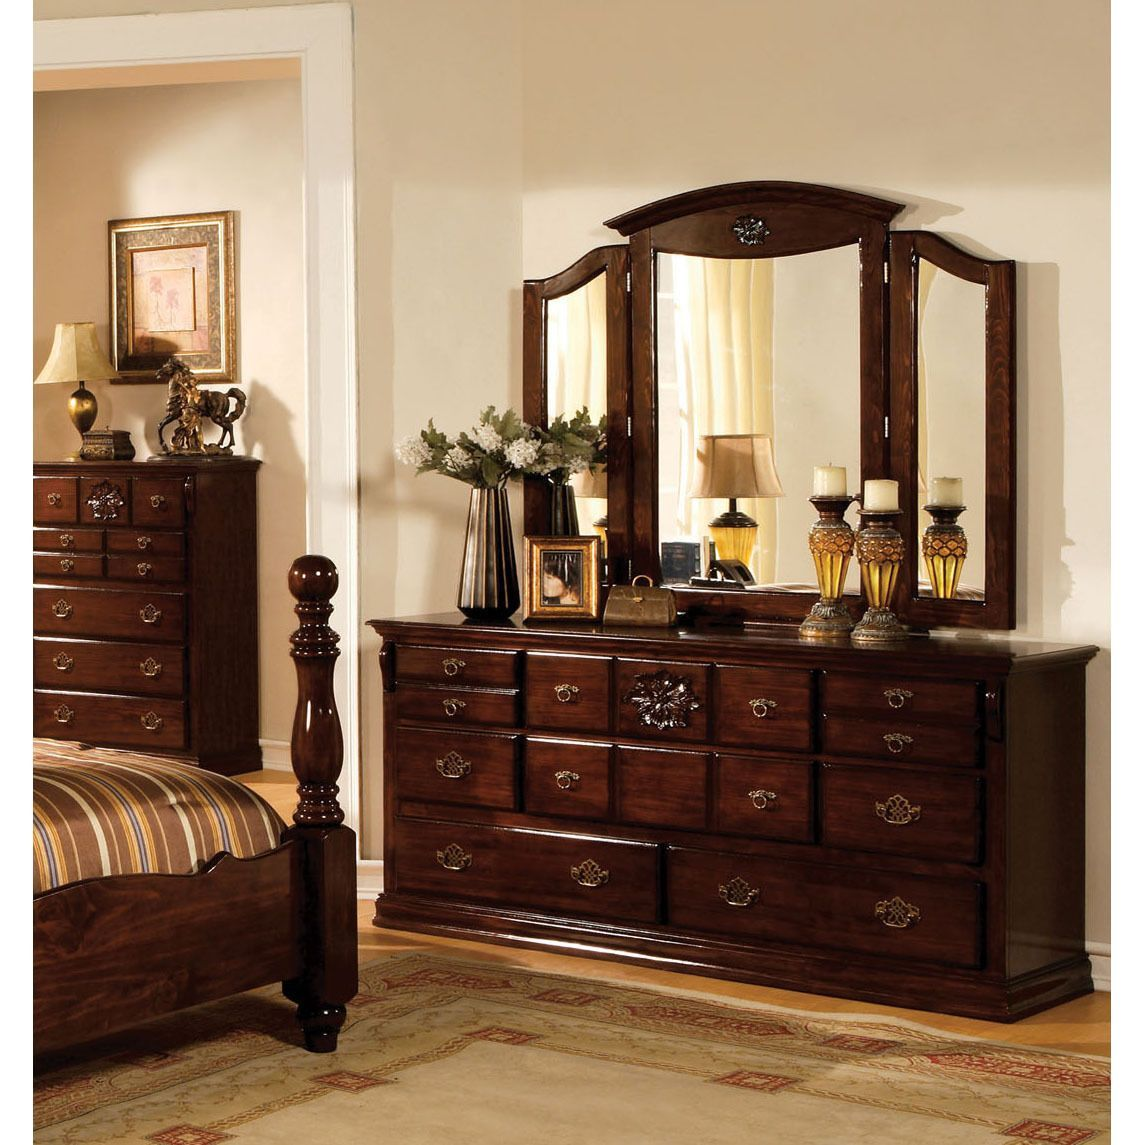 Furniture of america weston traditional piece glossy dark pine